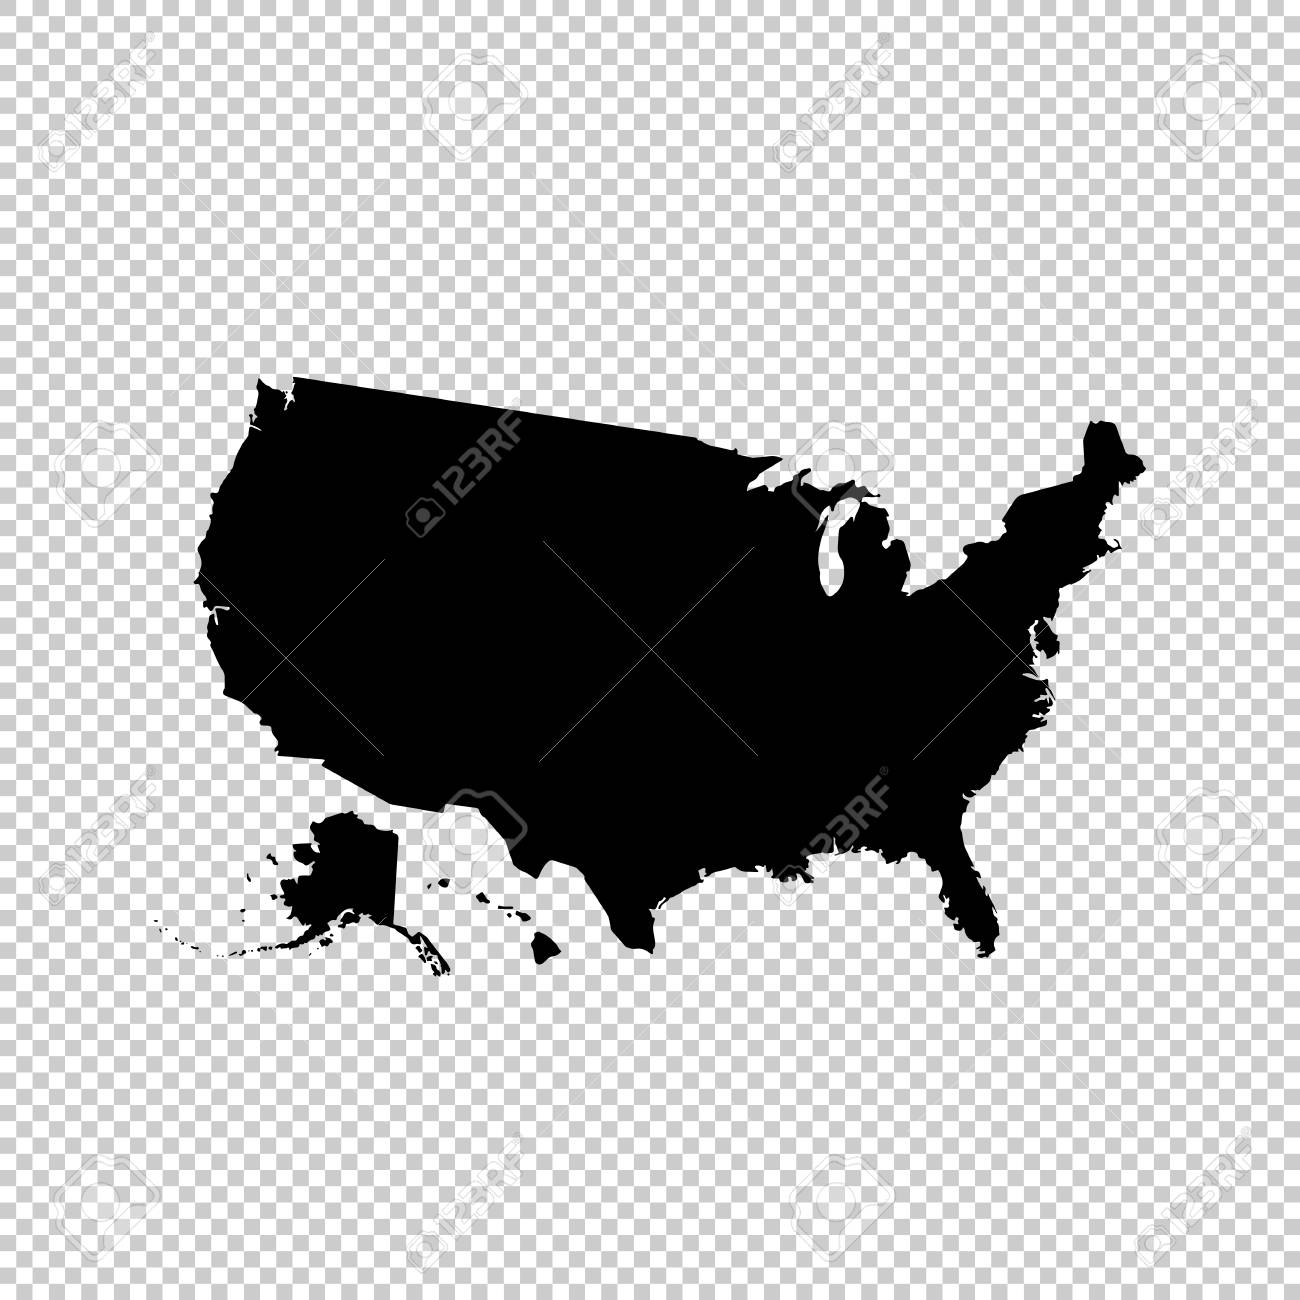 Map Of Usa Vector.Vector Map Usa Isolated Vector Illustration Black On White